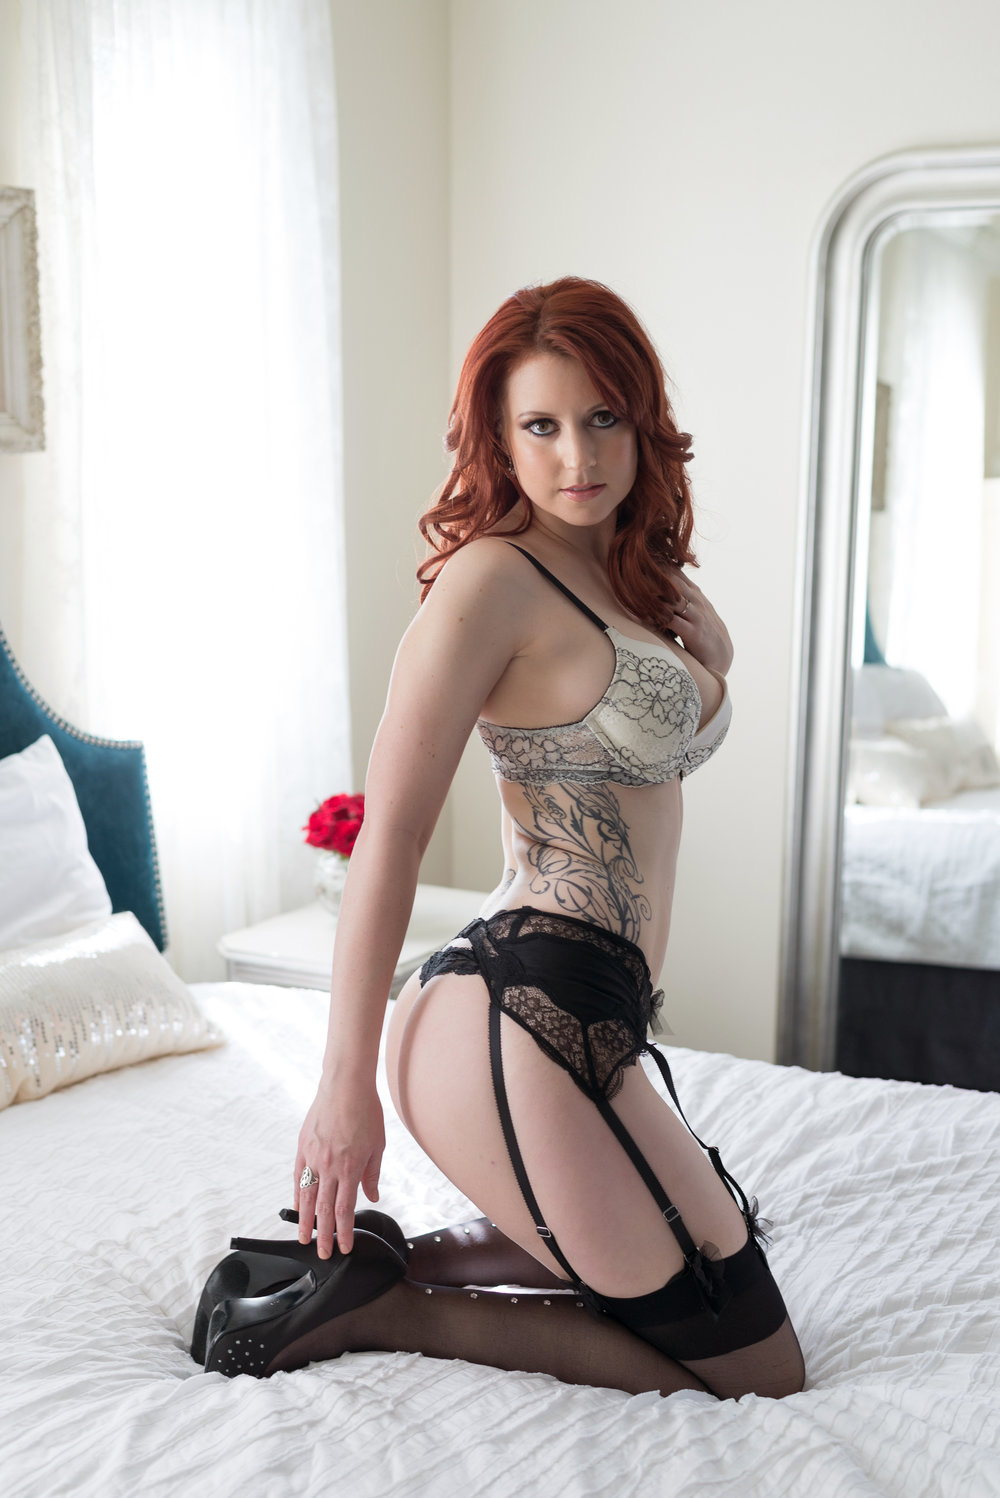 woman with red hair and tattoos in boudoir pose Denver intimate portraits